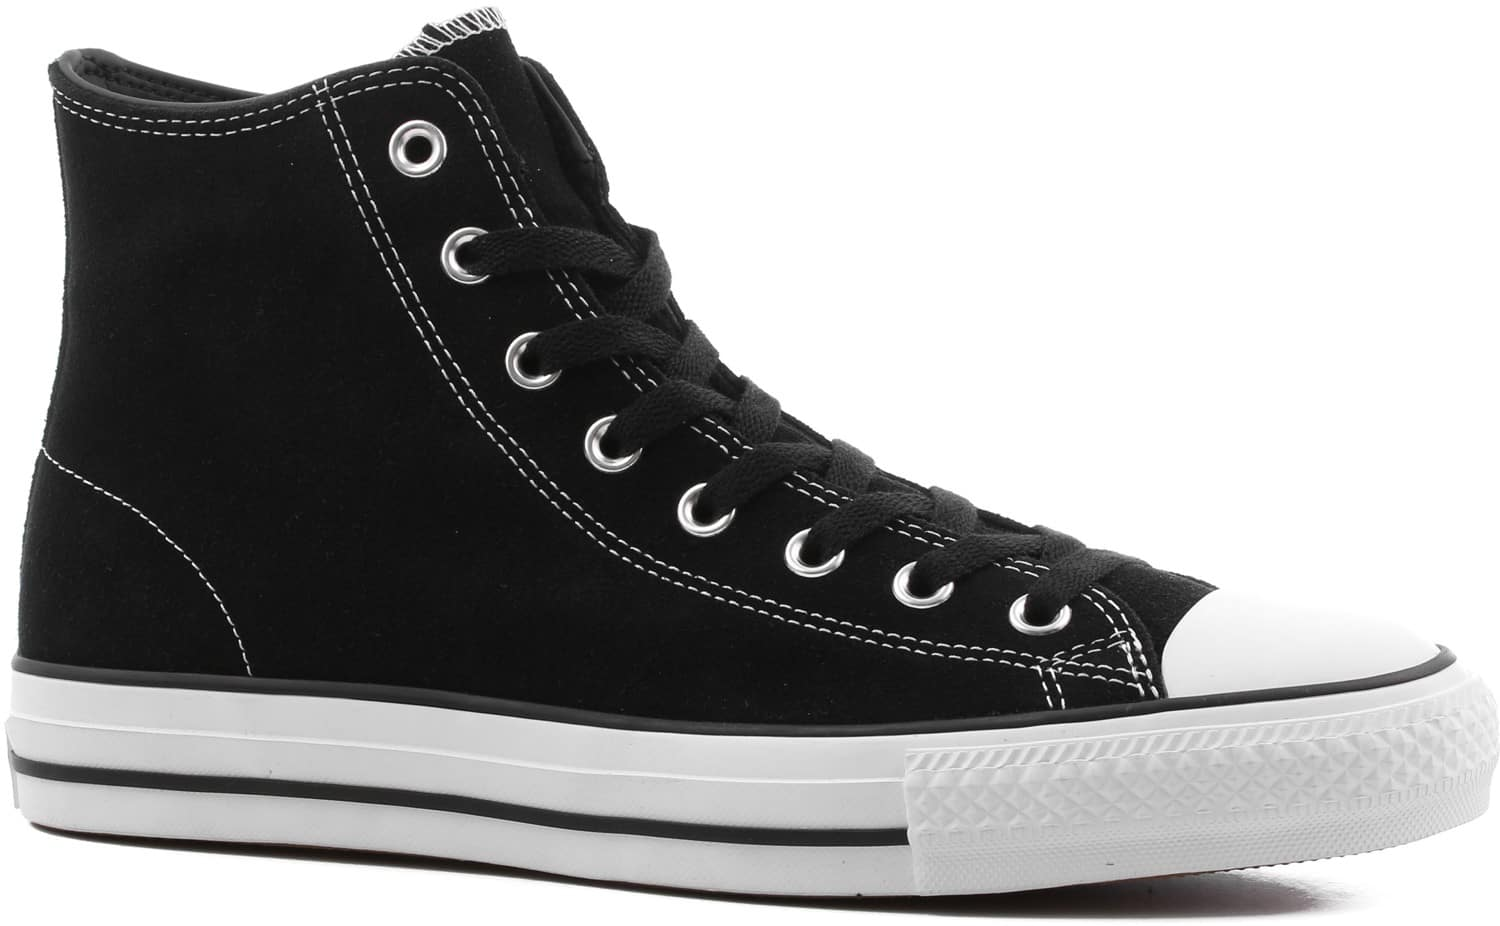 7a6e44b748dcd7 Converse Chuck Taylor All Star Pro High Skate Shoes - Free Shipping ...